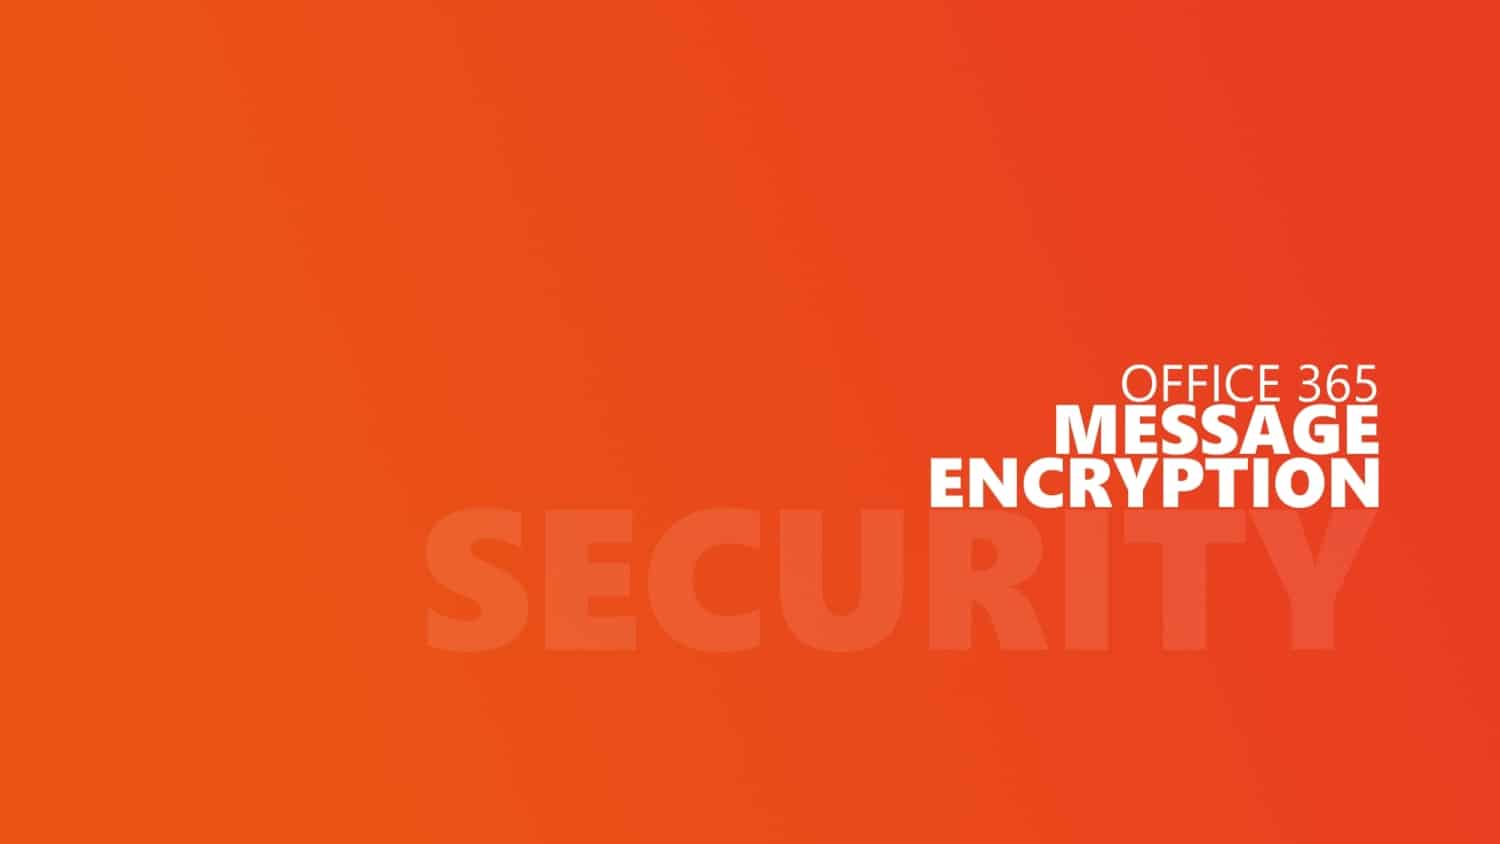 Email Encryption in Office 365 using Exchange Online